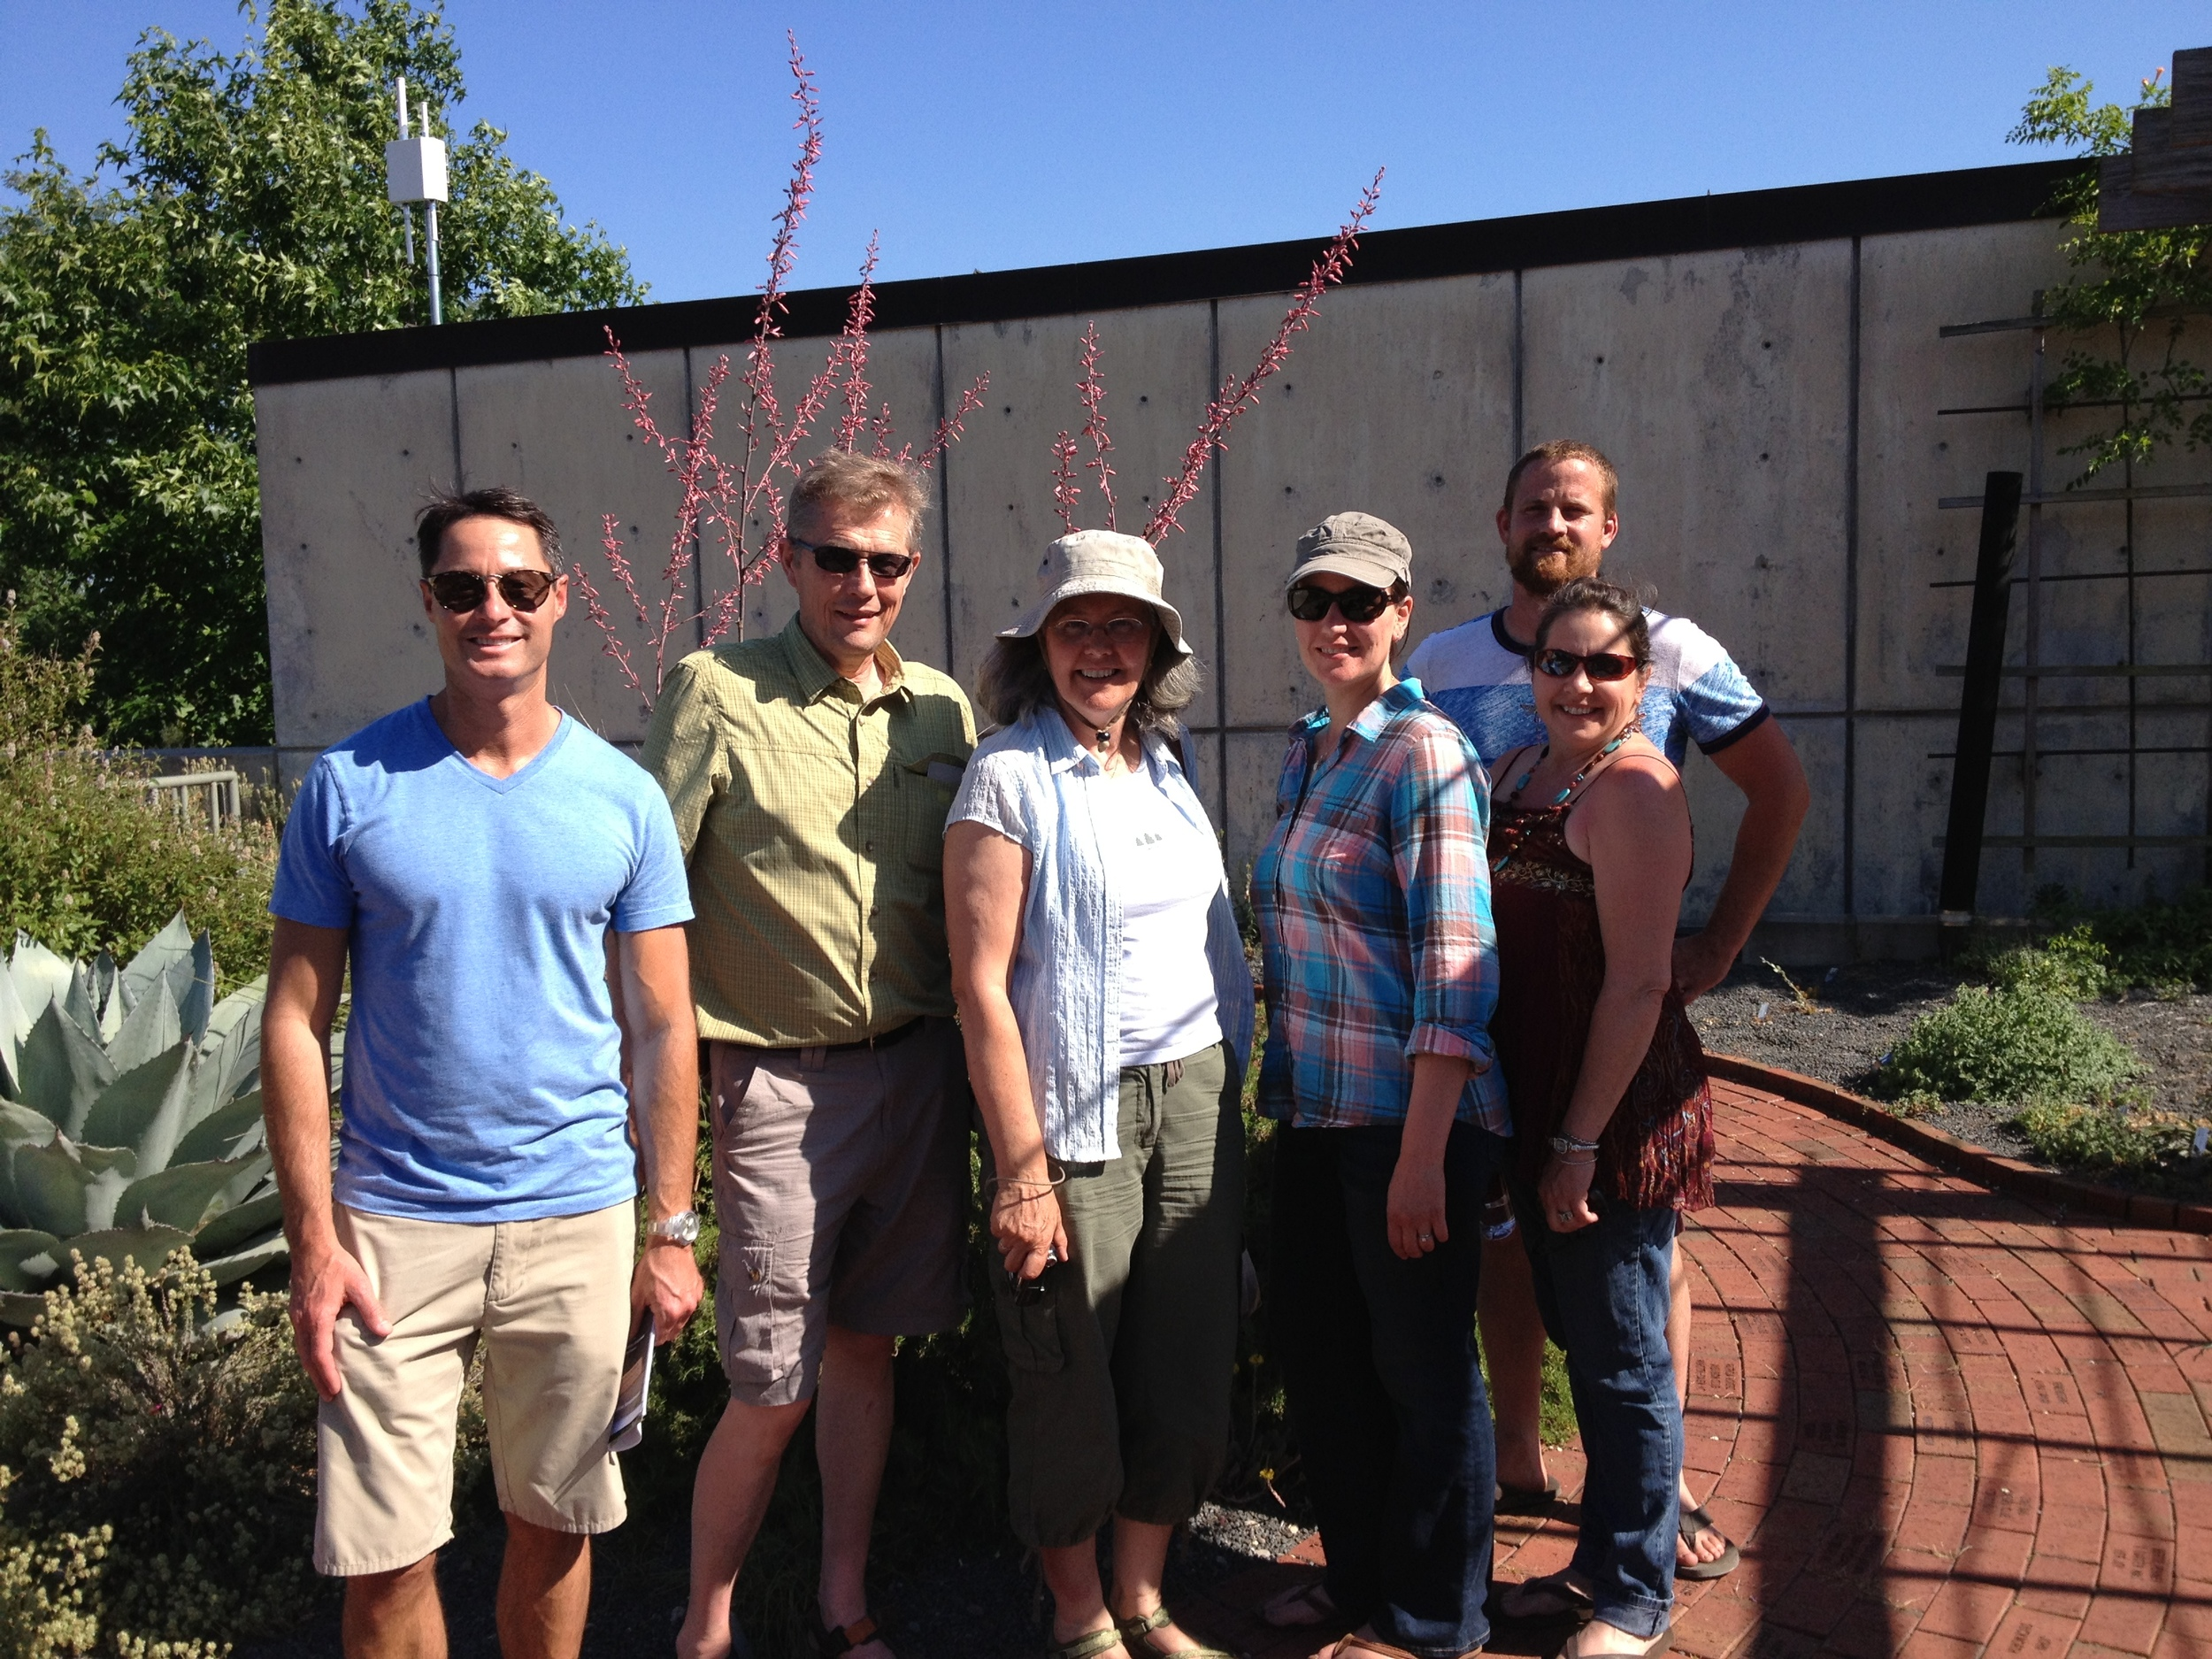 The crew from the Delaware Center for Horticulture.